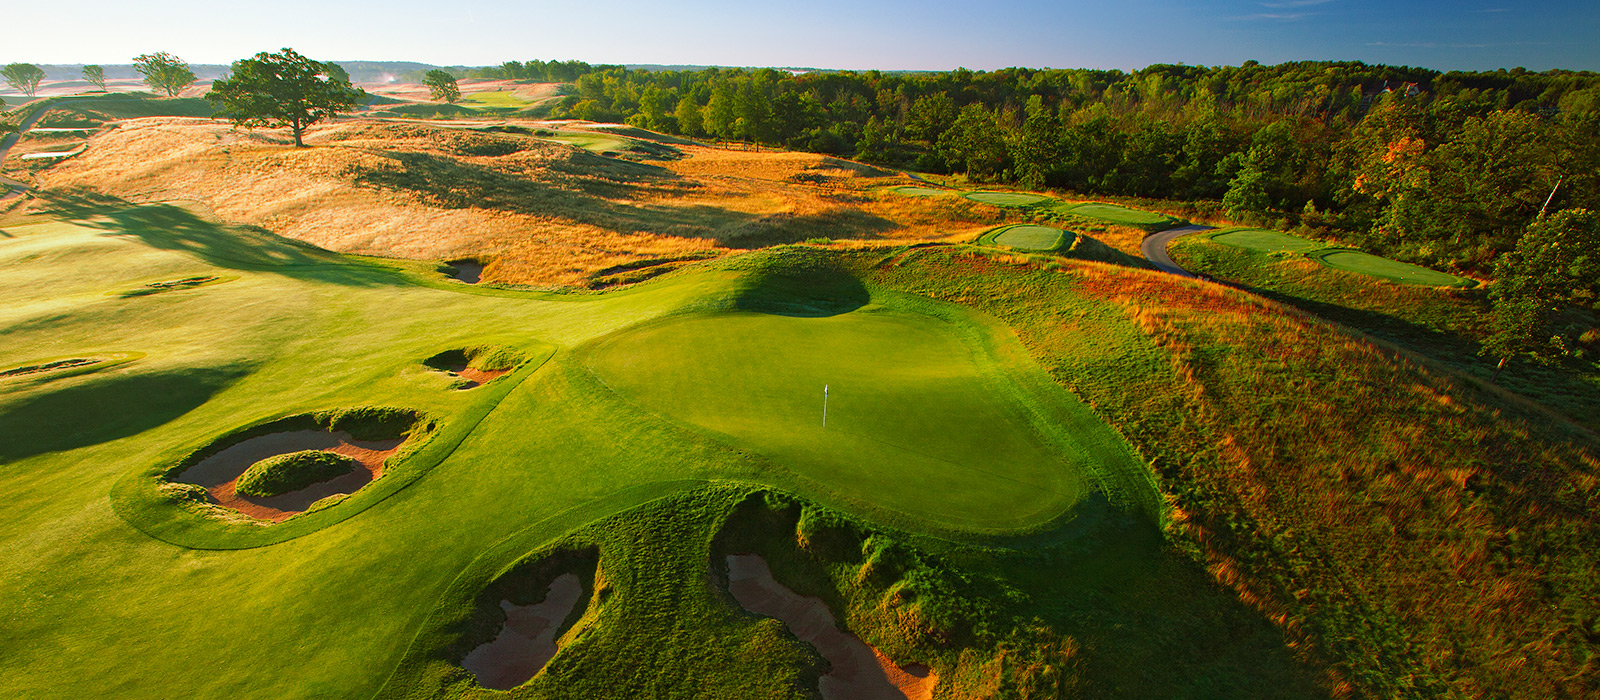 Overview of golf course named Erin Hills Golf Course